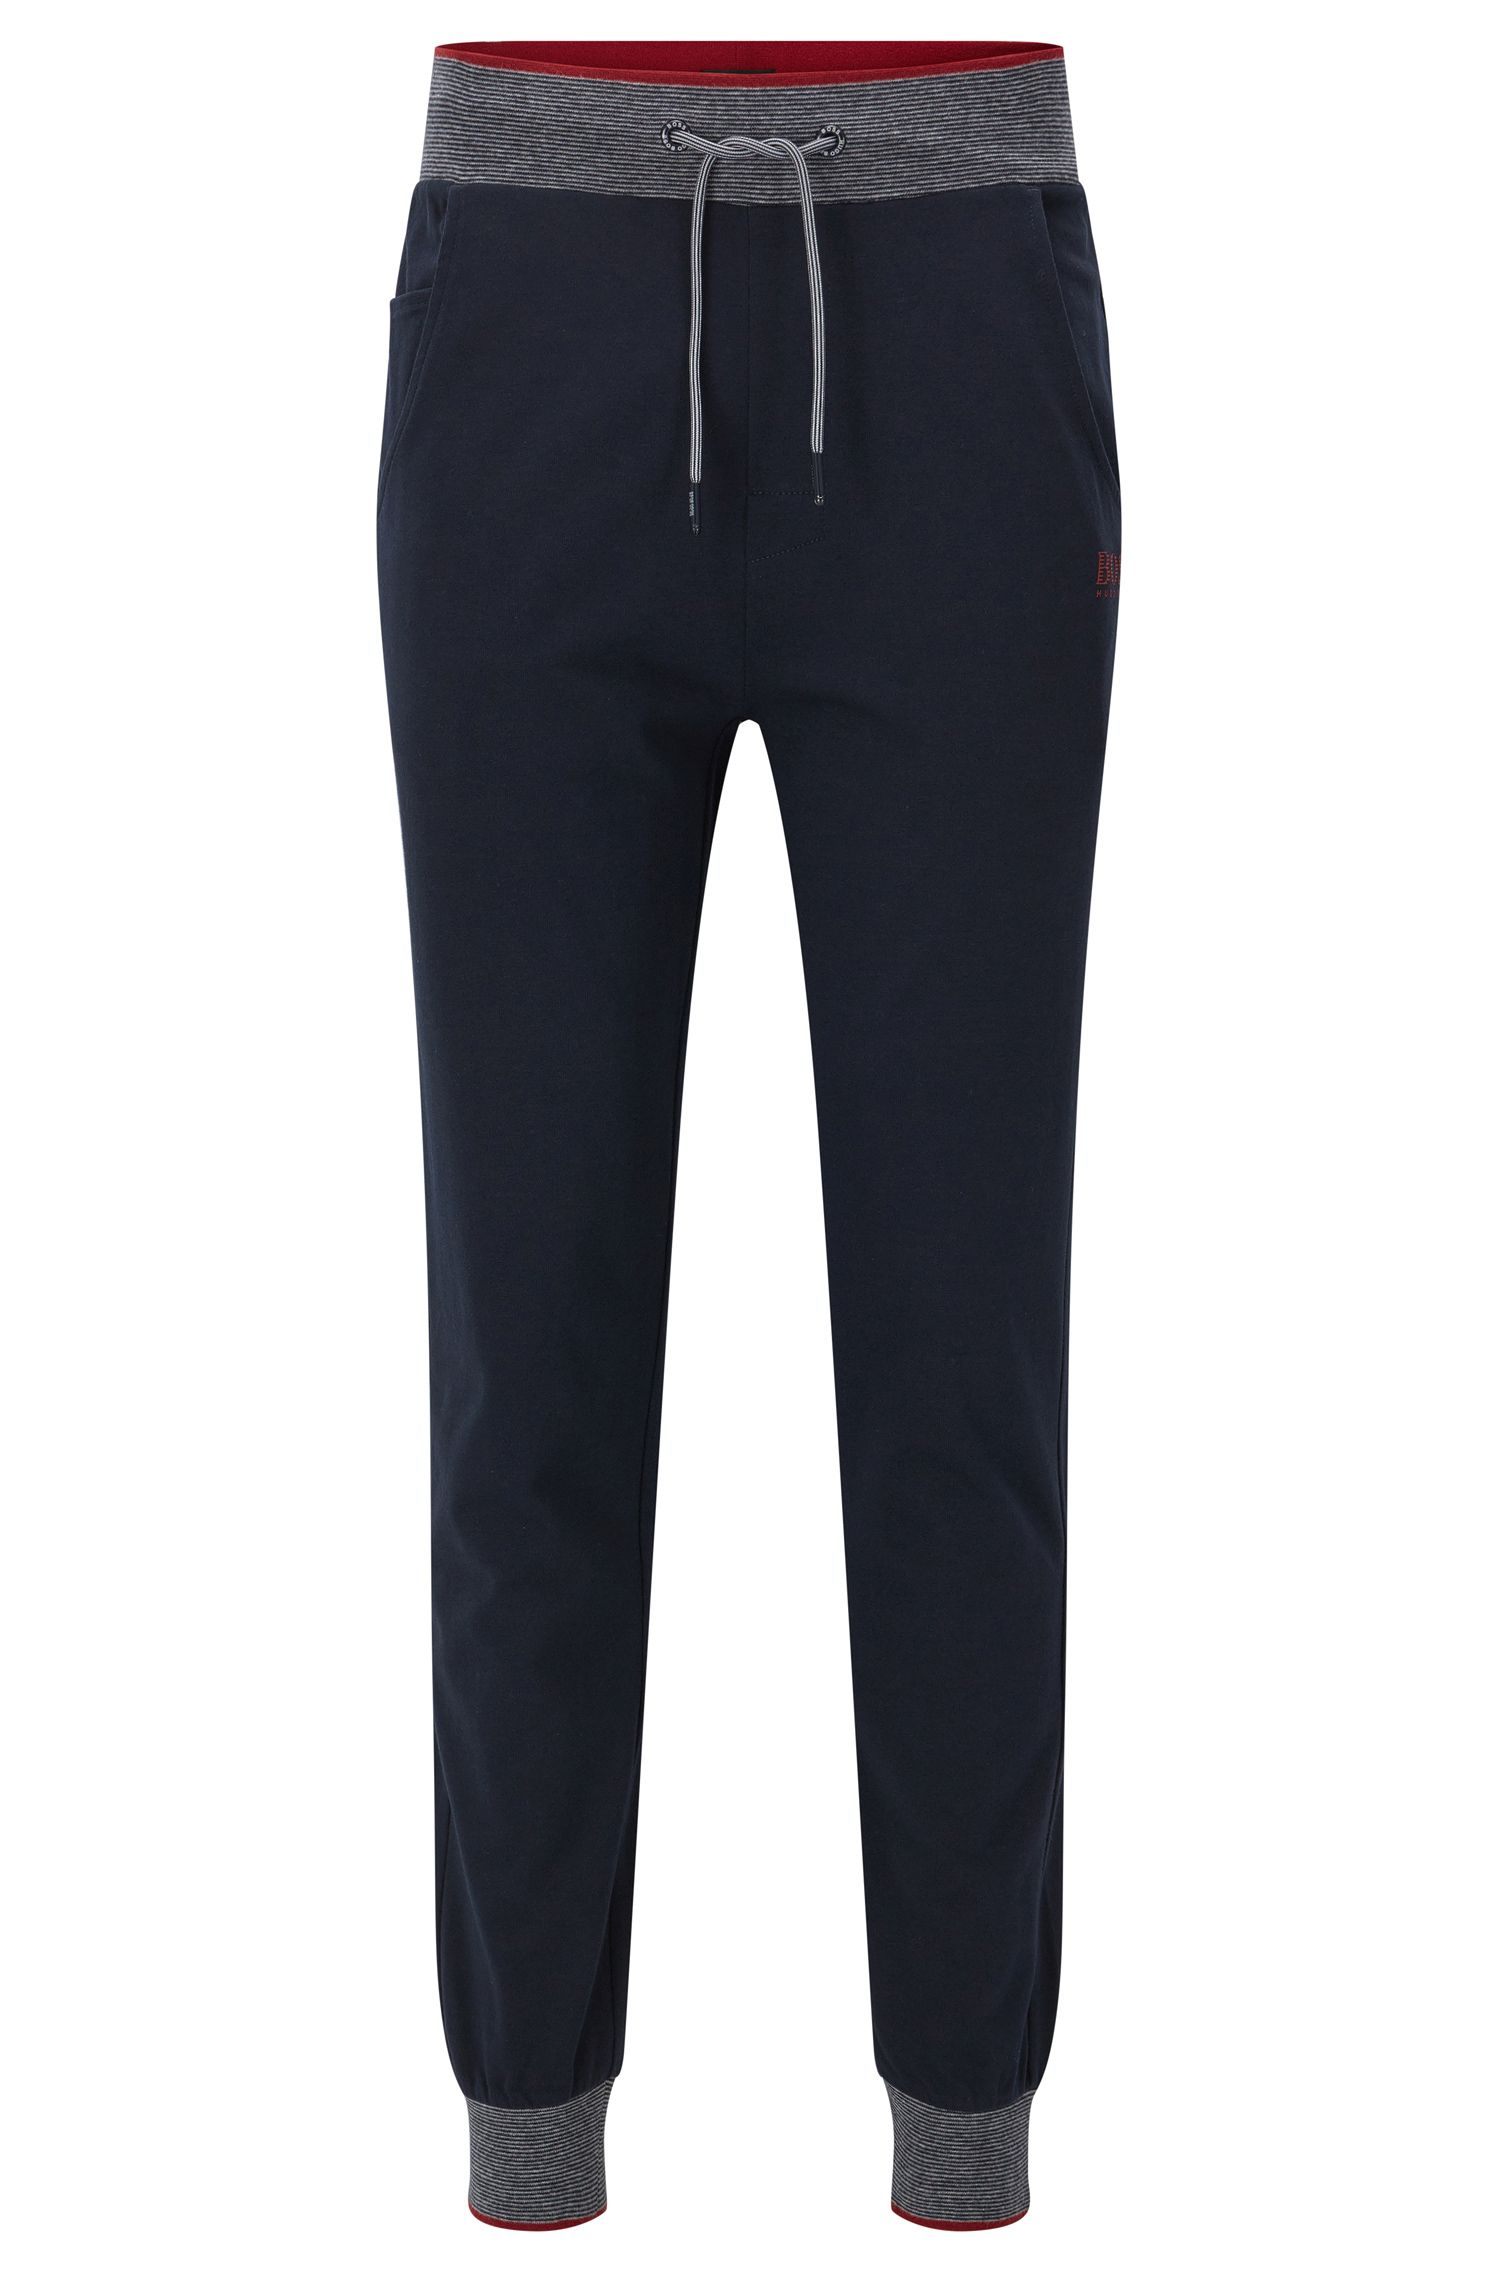 Cotton Jersey Lounge Pants | Long Pant Cuffs